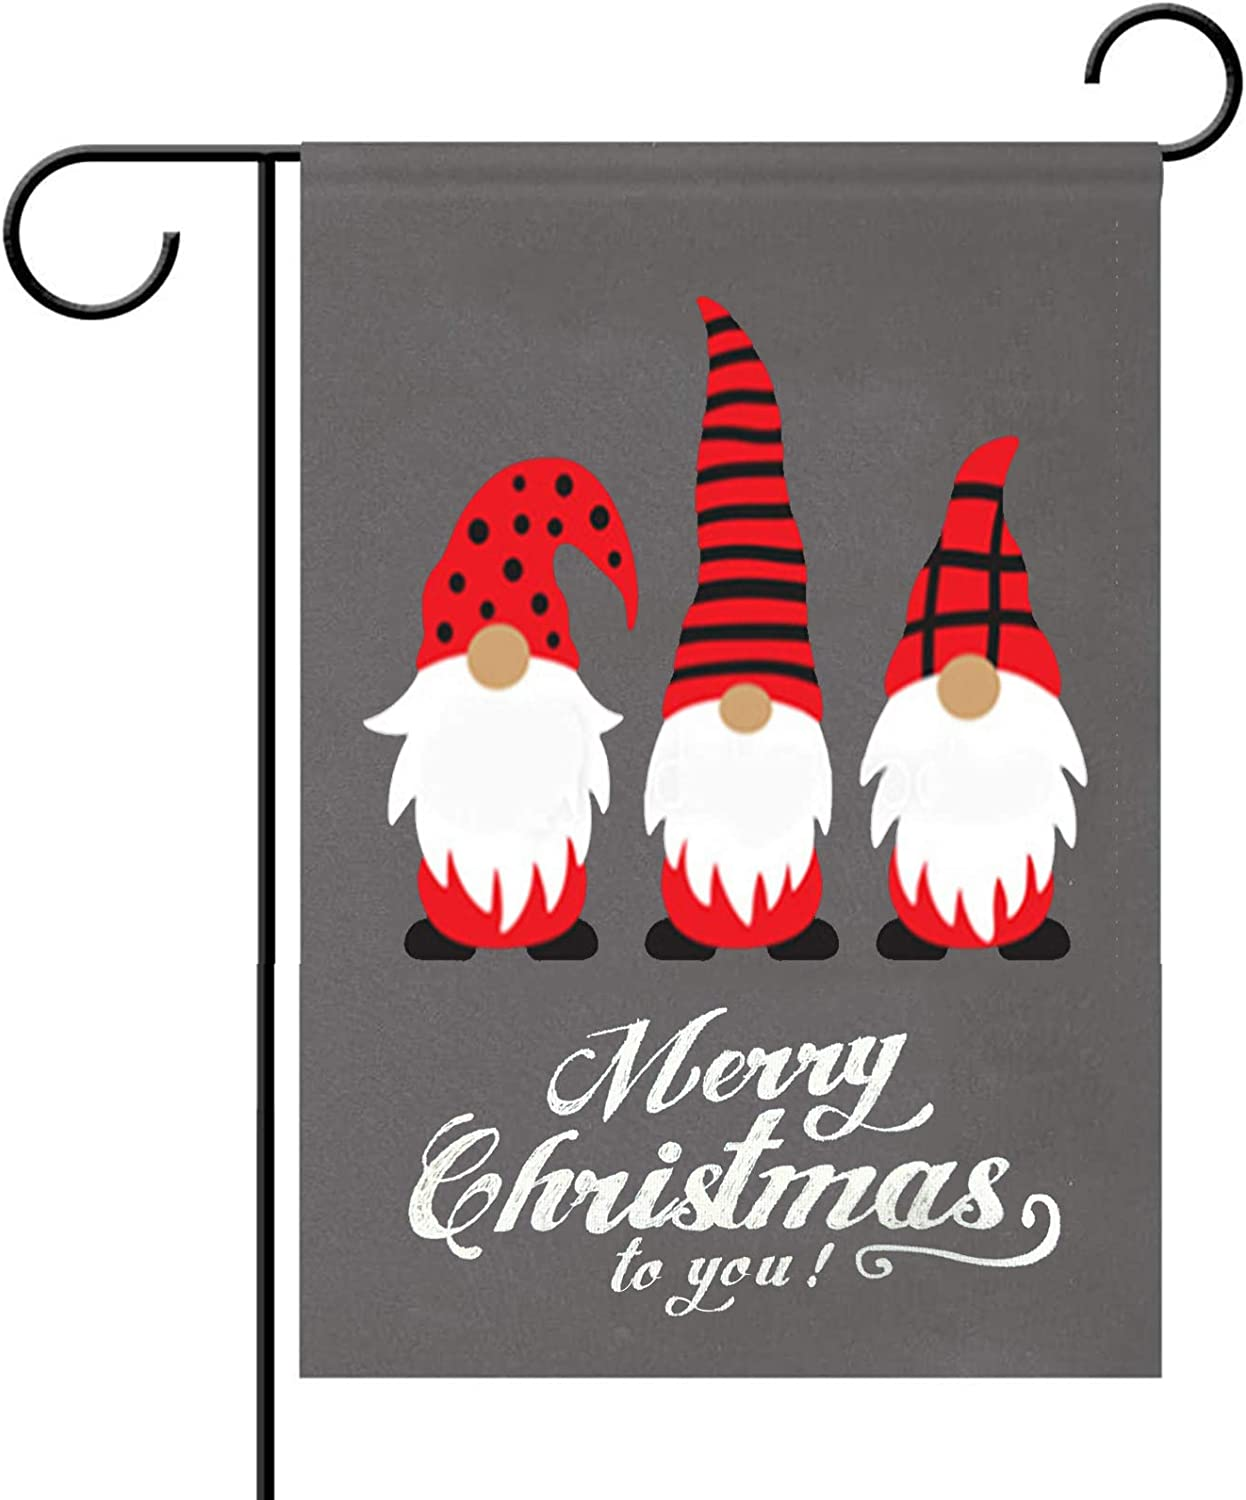 Deloky Merry Christmas Gnomes Garden Flag-12.5 x 18 Inch Double-Sided Printed Christmas Winter Farmhouse Yard Burlap Banner for Home & Outdoor Decoration (Red Gnomes)